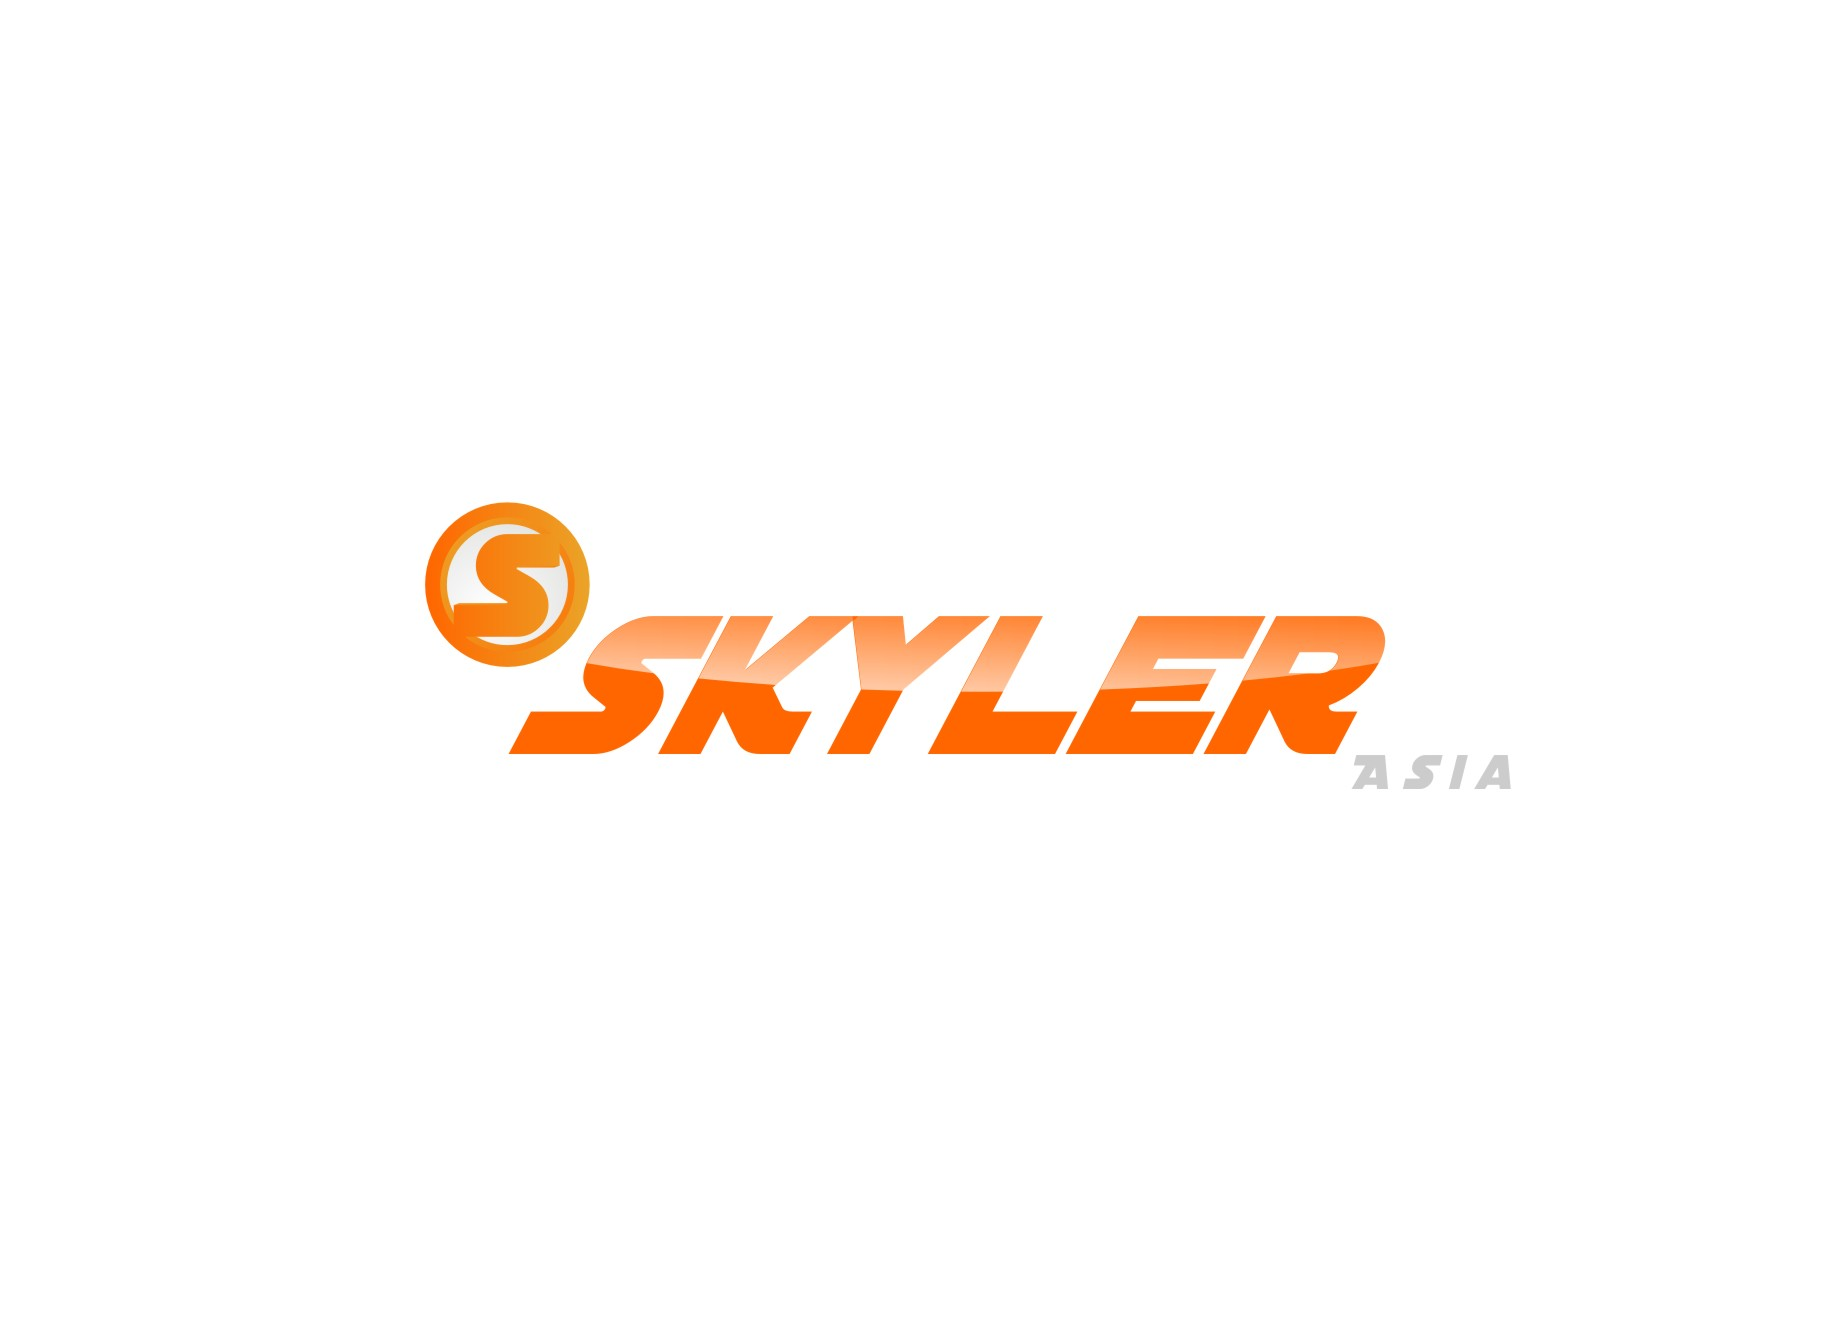 Logo Design by Choirul Jcd - Entry No. 87 in the Logo Design Contest Artistic Logo Design for Skyler.Asia.